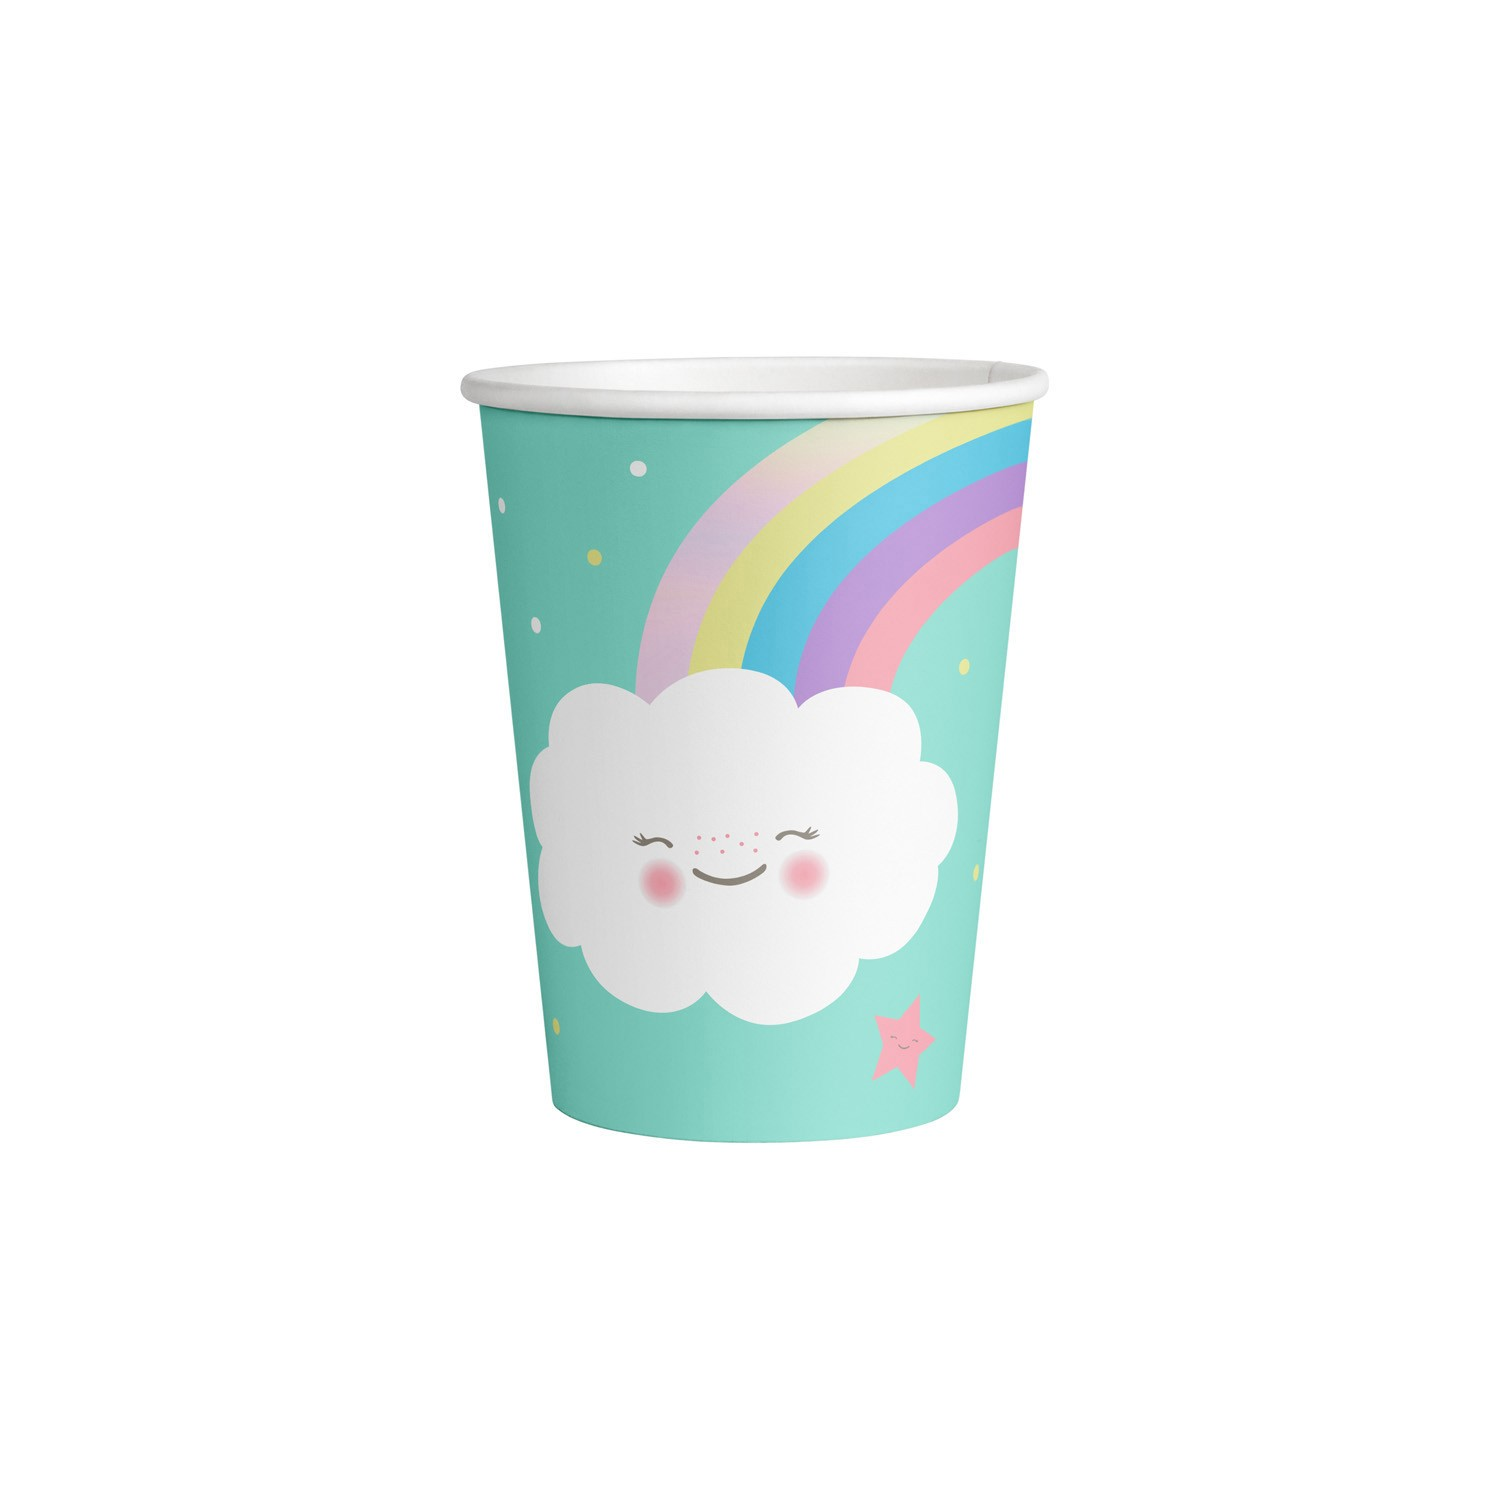 Rainbow & Clouds cups x8